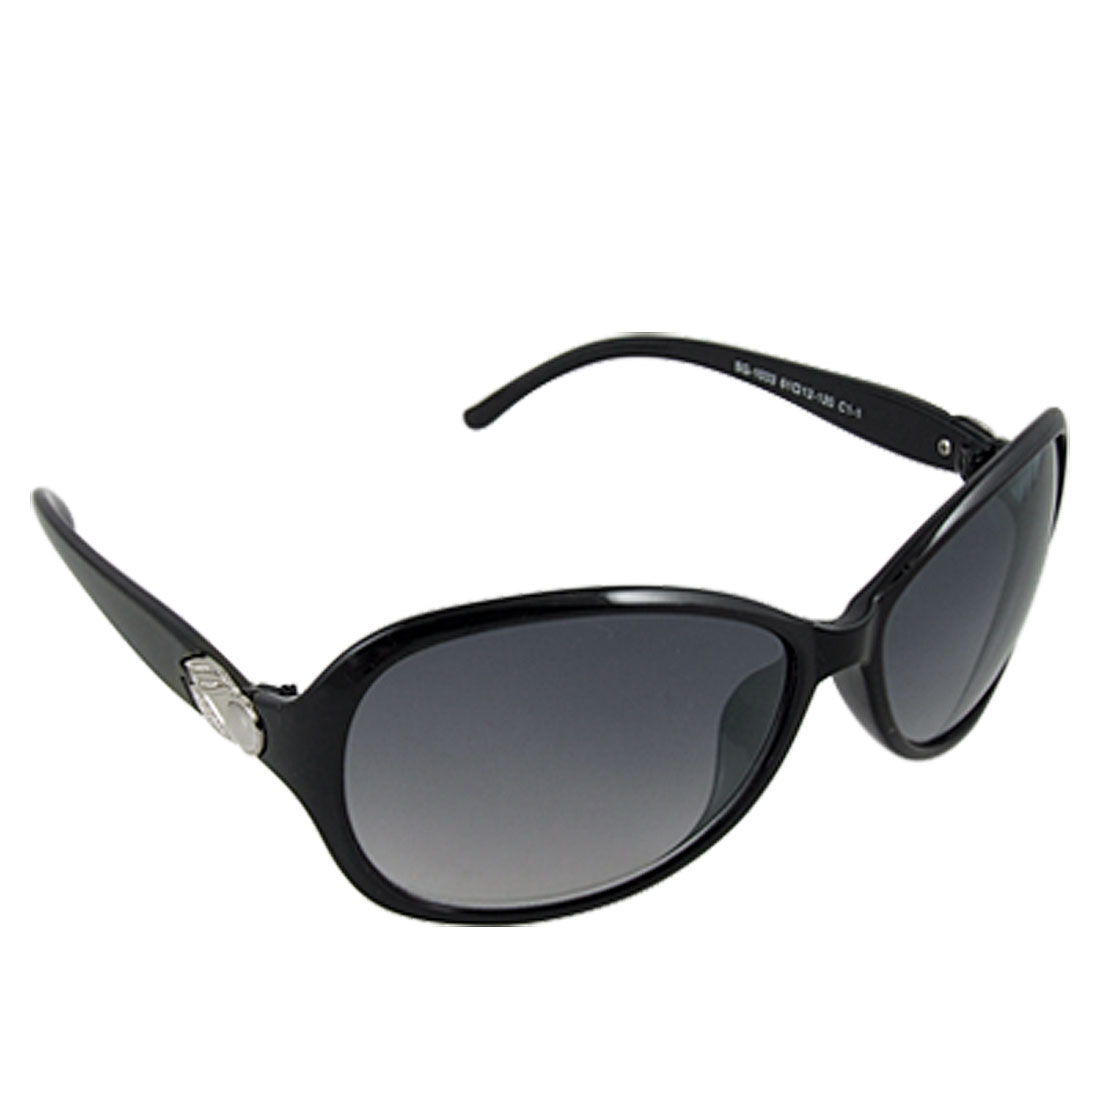 Black Frame Full Rim Plastic Arms Clear Gray Lens Lady Sunglasses